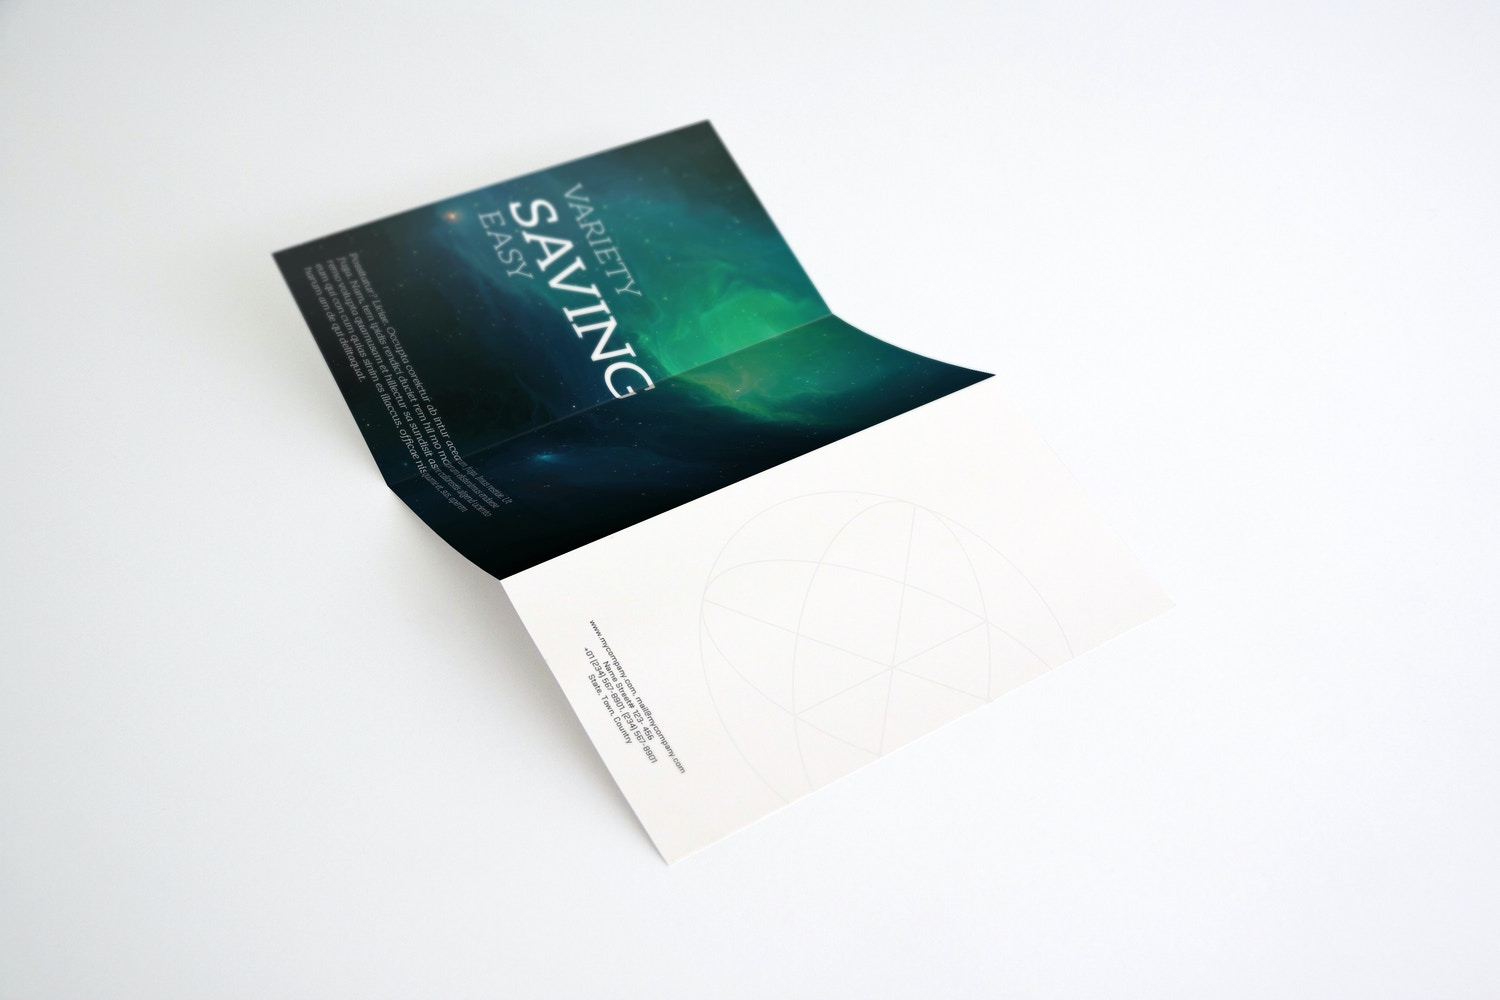 A4 Brochure Mockup 01 by Original Mockups on Original Mockups